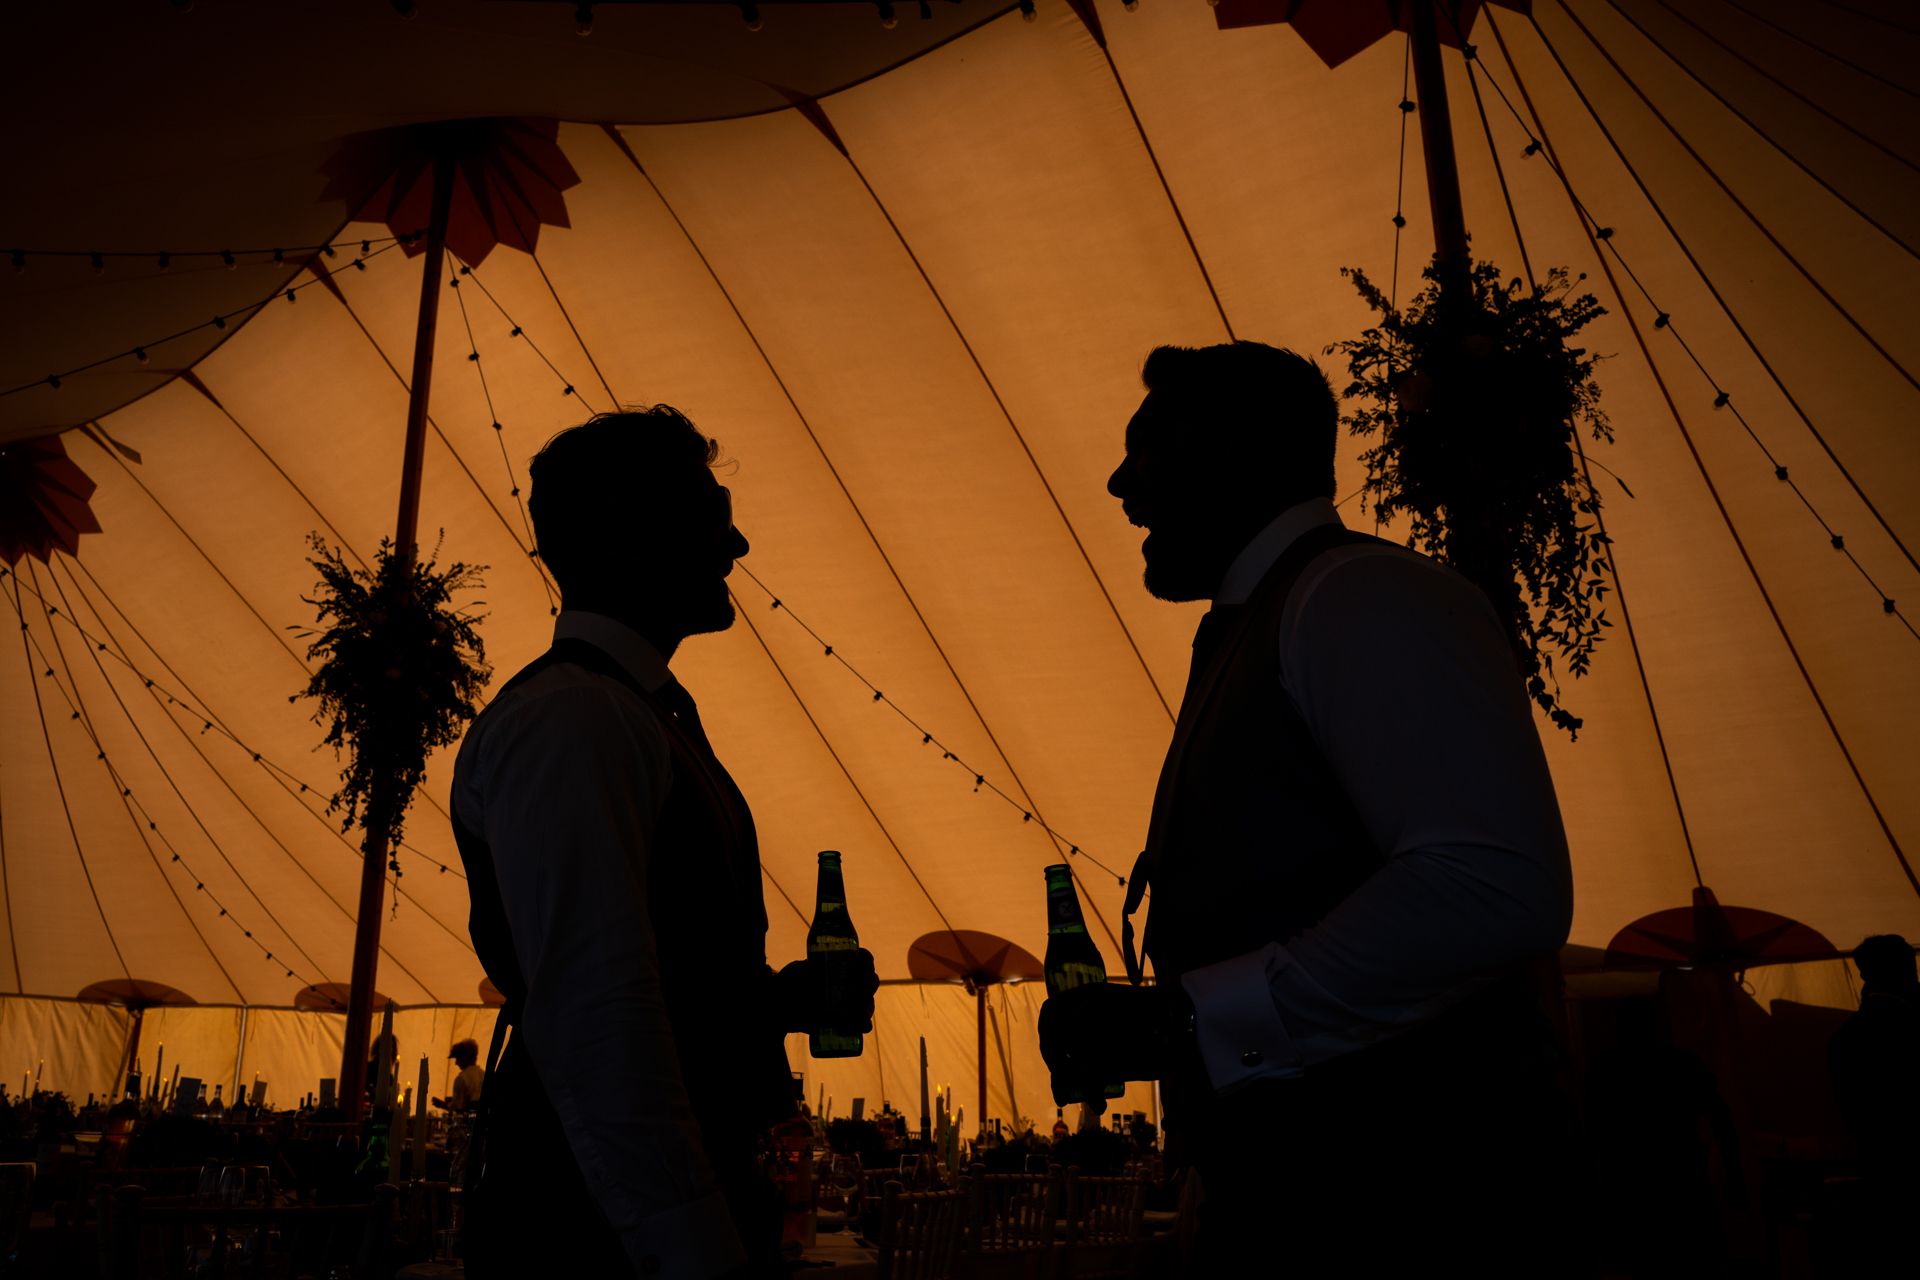 Wedding tent photos showing the contrasts with darker subjects, resulting in great visuals